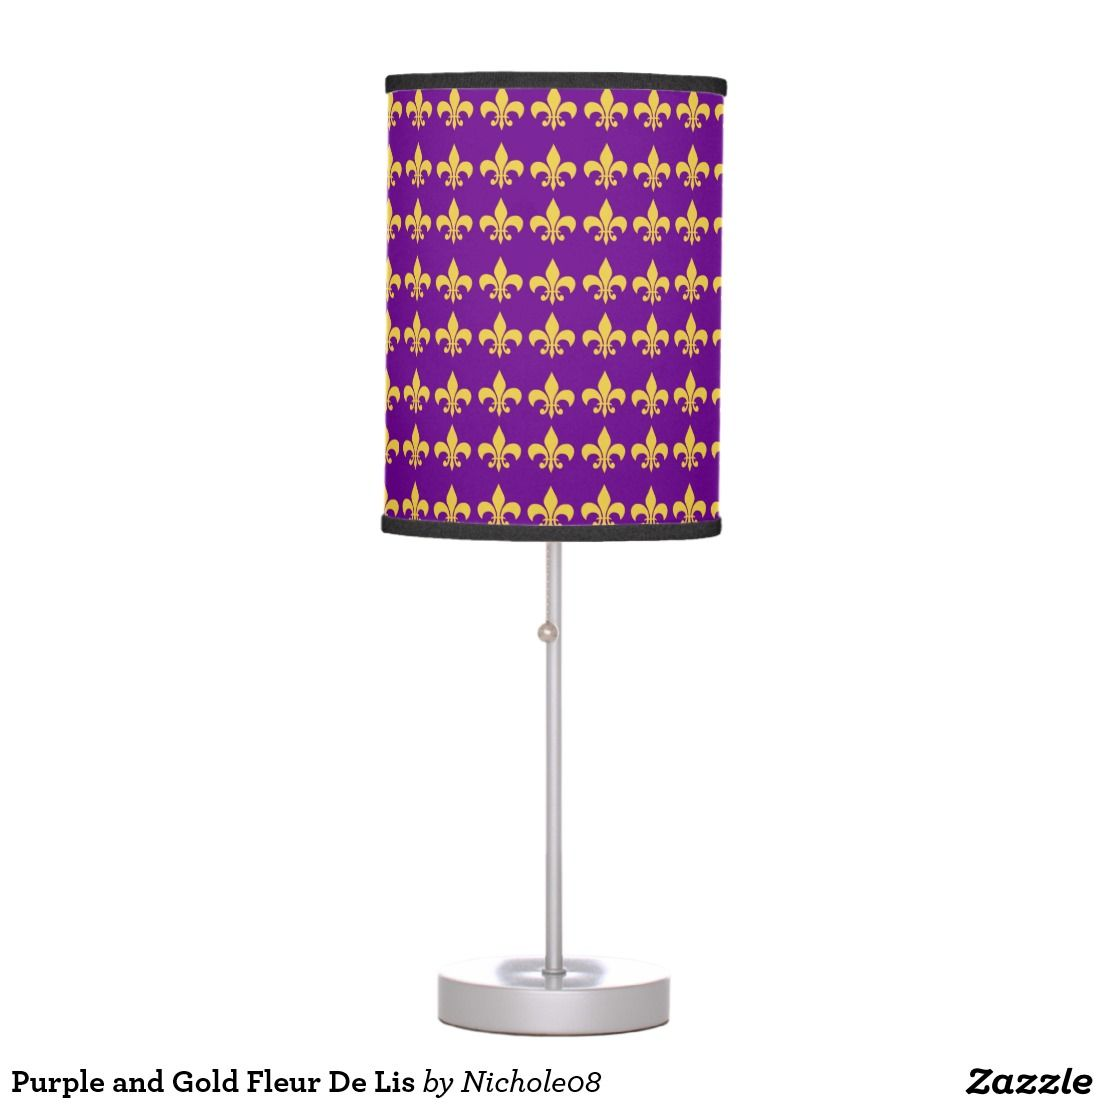 Purple and gold fleur de lis table lamp tables purple and table purple and gold fleur de lis table lamp geotapseo Gallery